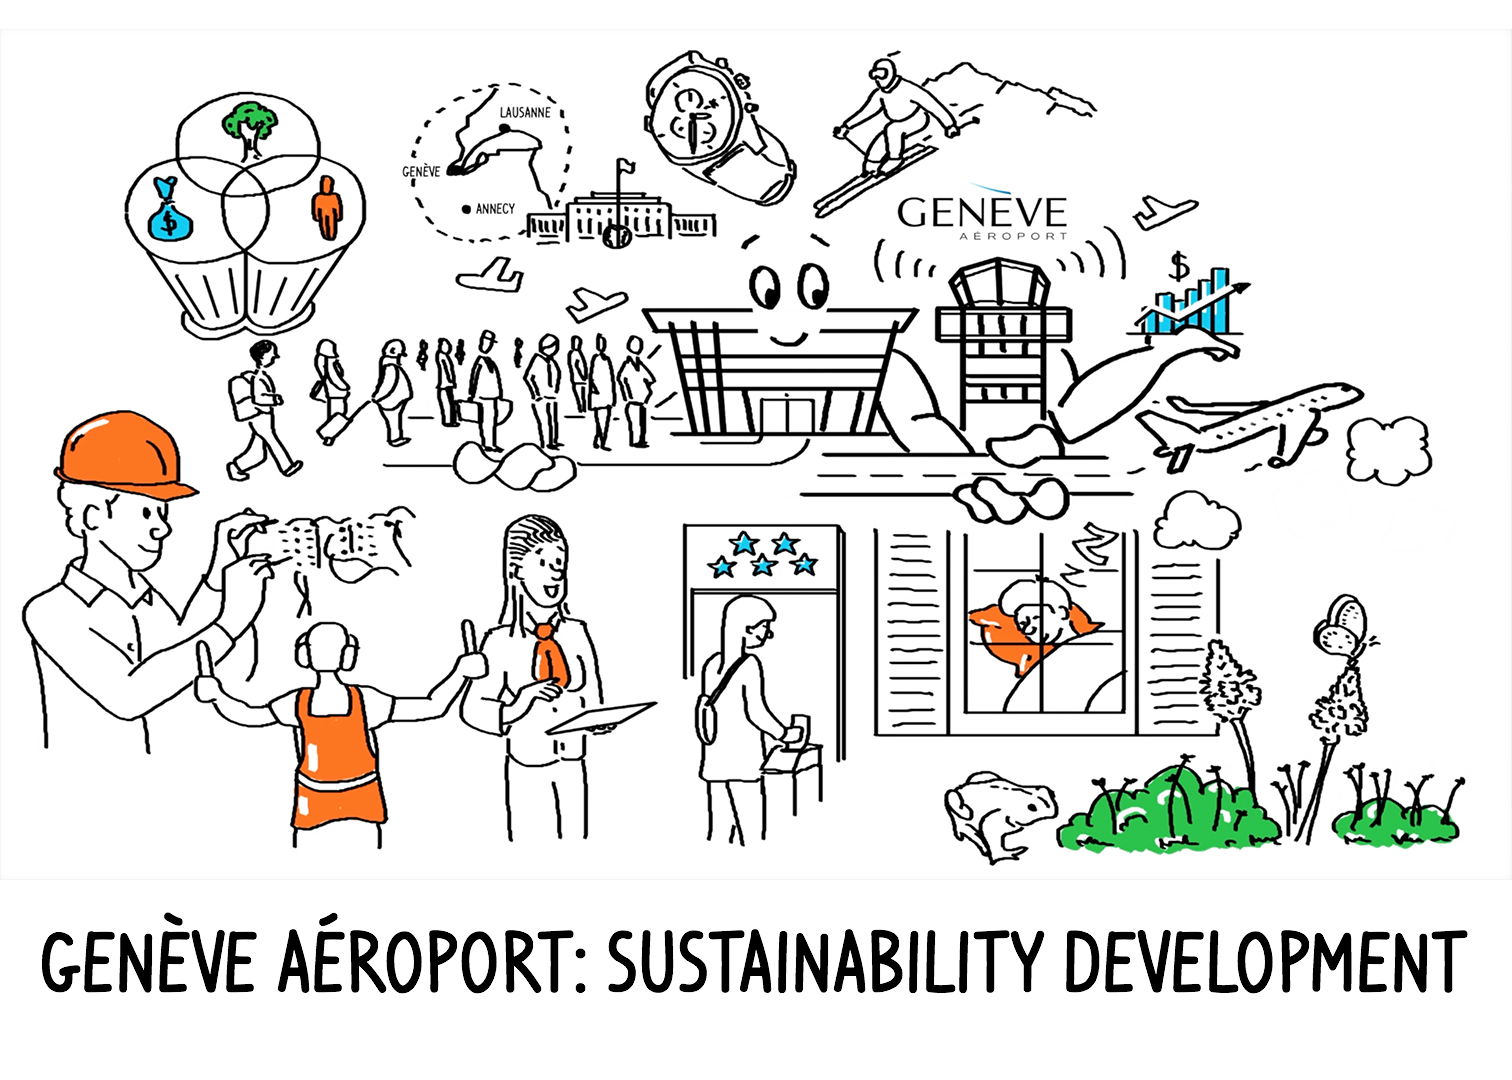 Sustainable Development at Genève Aéroport